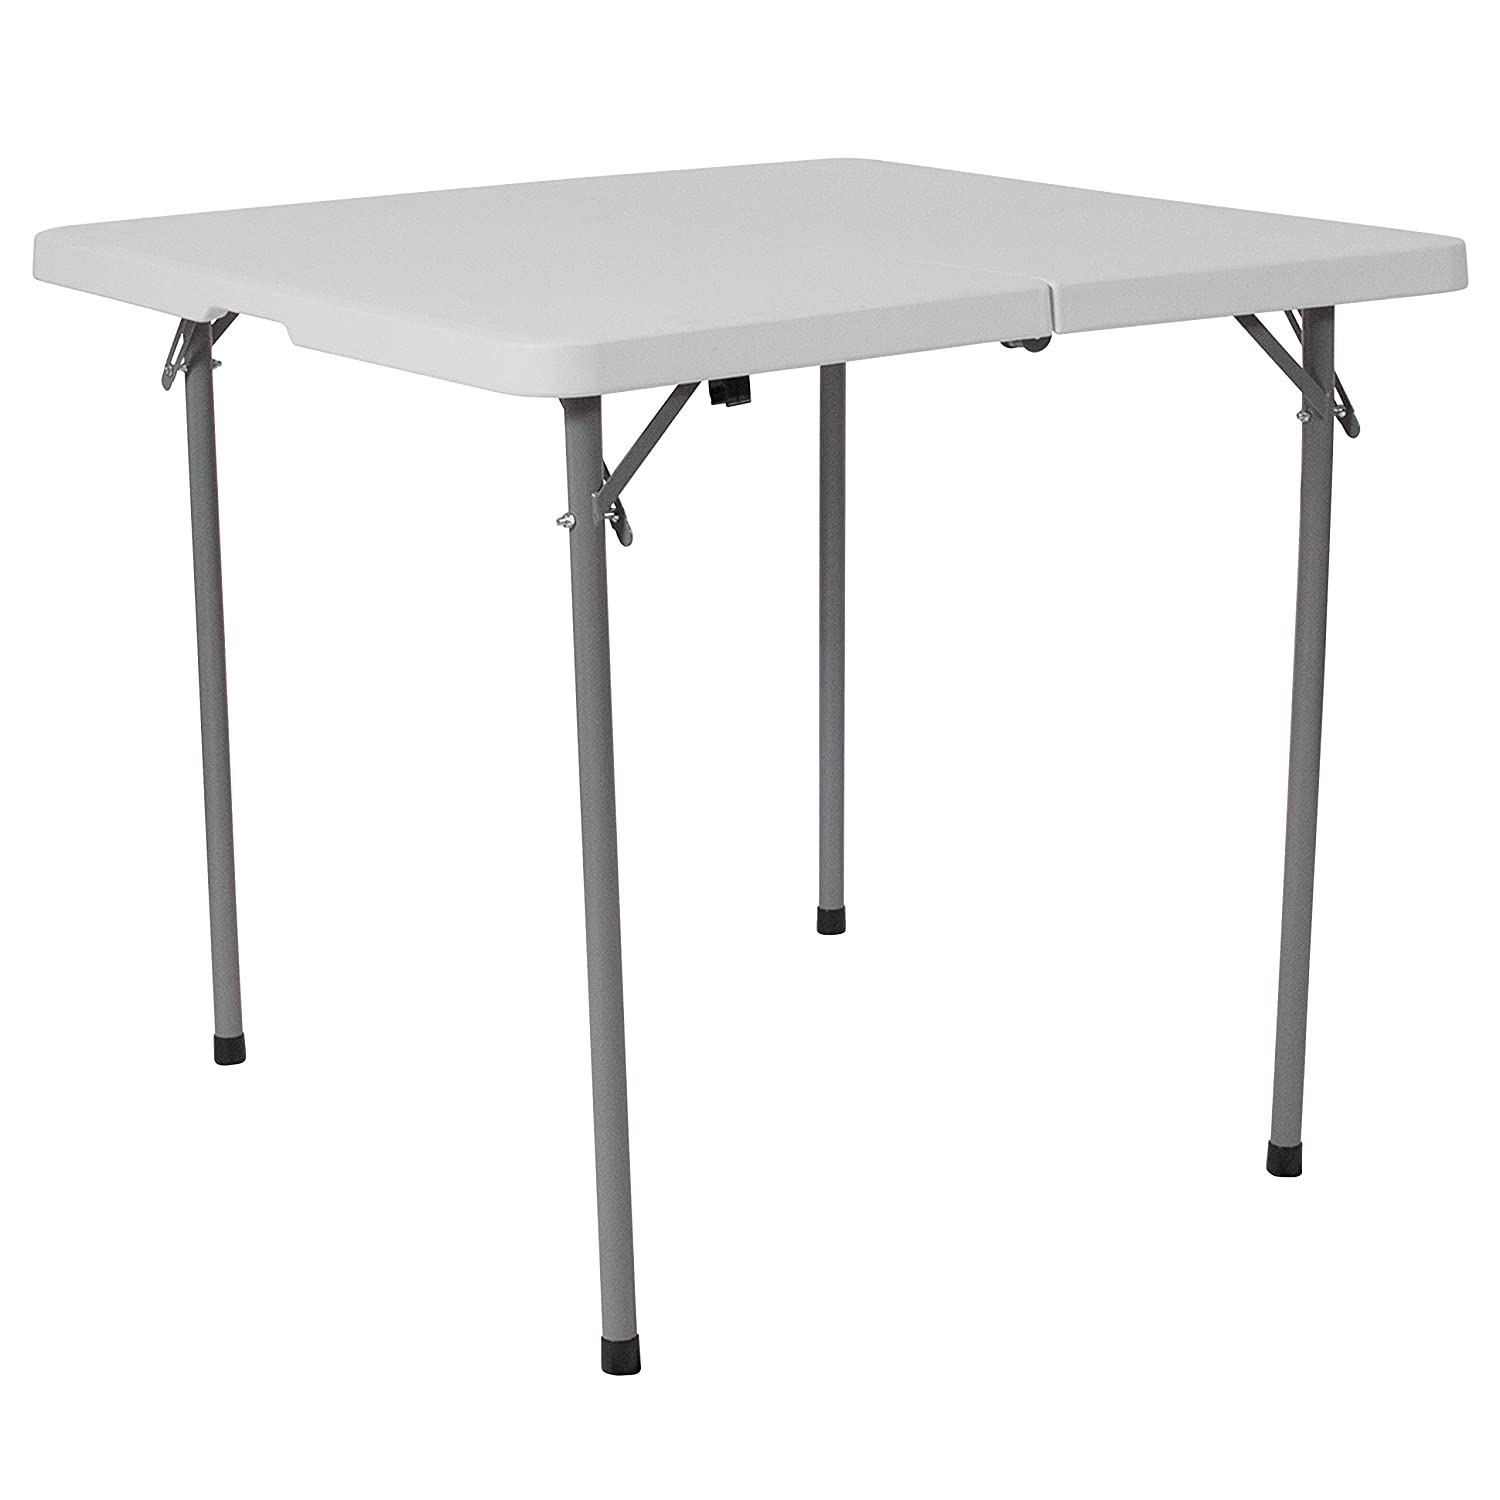 Flash Furniture 34'' Square Bi-Fold Granite White Plastic Folding Table with Carrying Handle